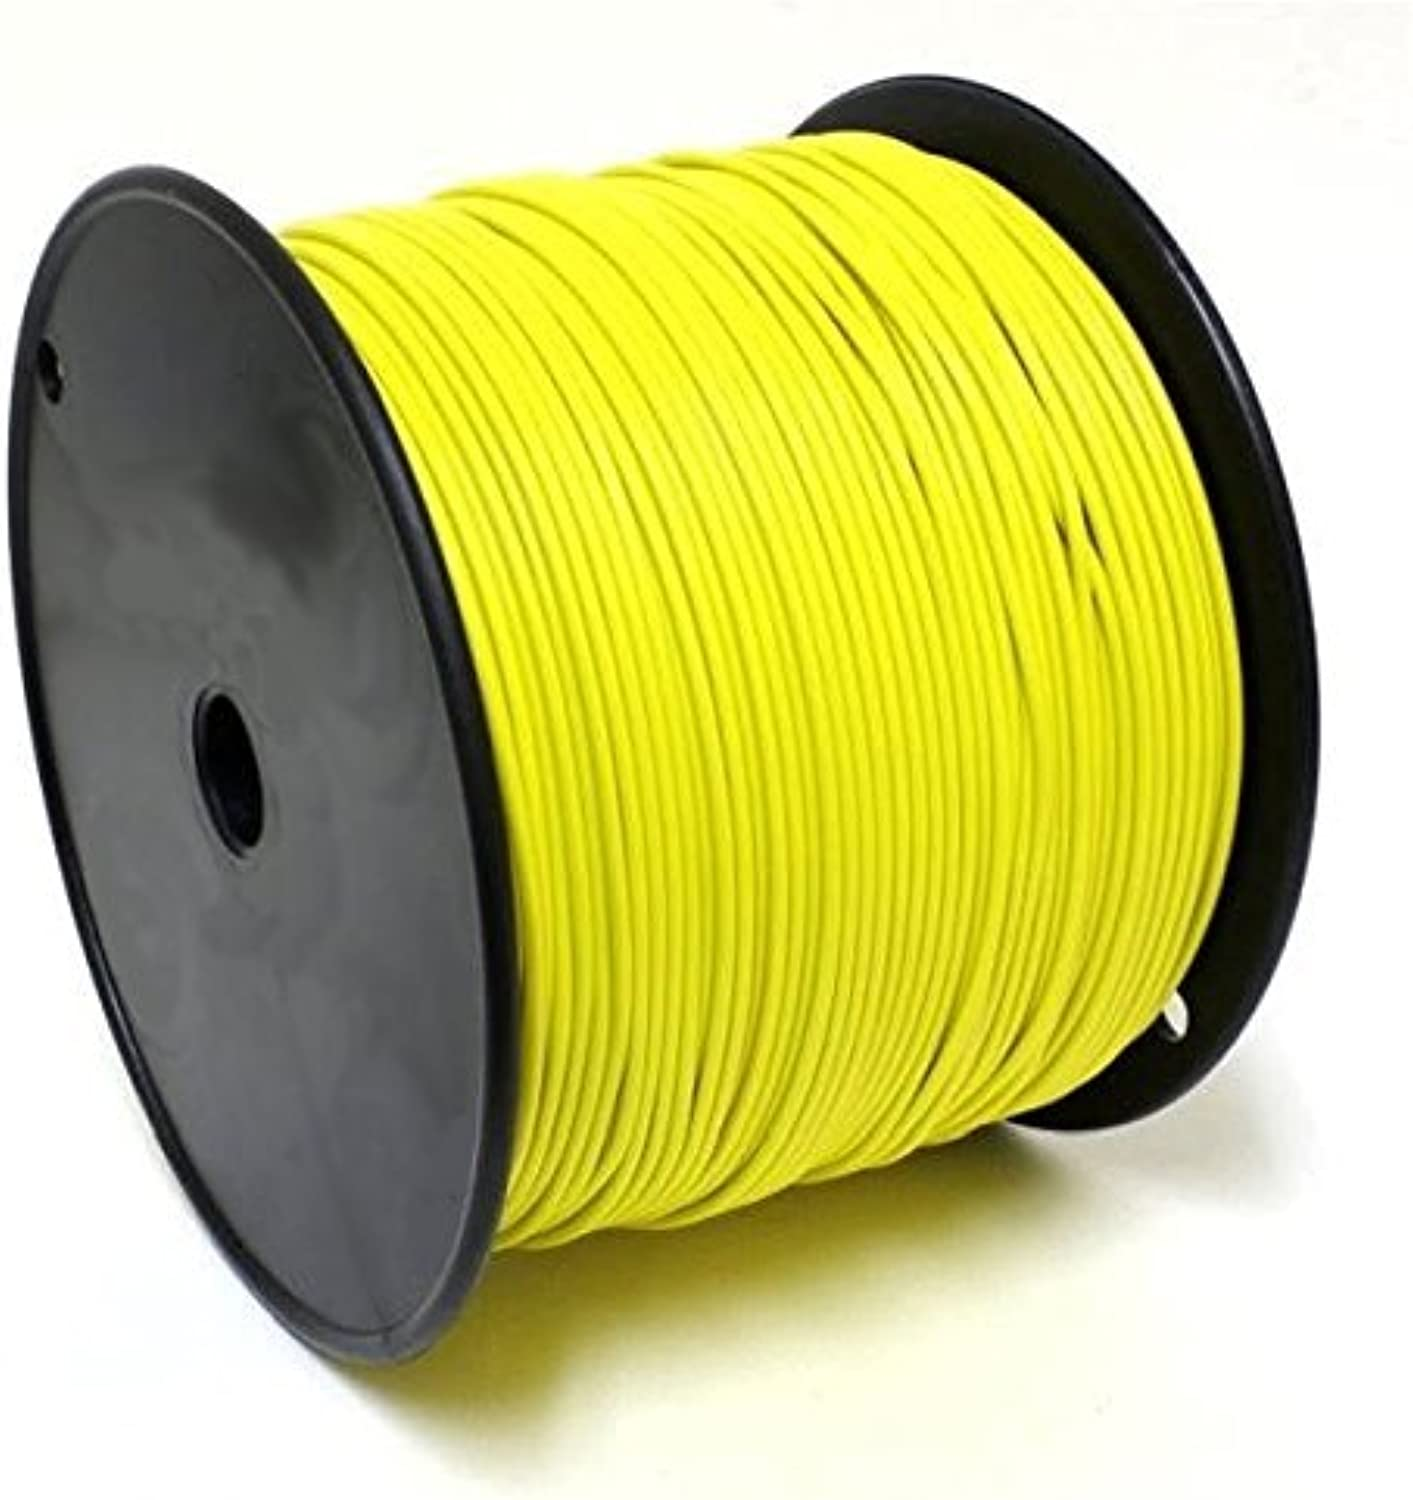 FunAce Burial Grade 20 Gauge Copper Wire  Extra Thick Heavy Duty Single Stranded Solid Insulated Wire Cable Reel  Wire Spool 20AWG 1000 Feet  Yellow